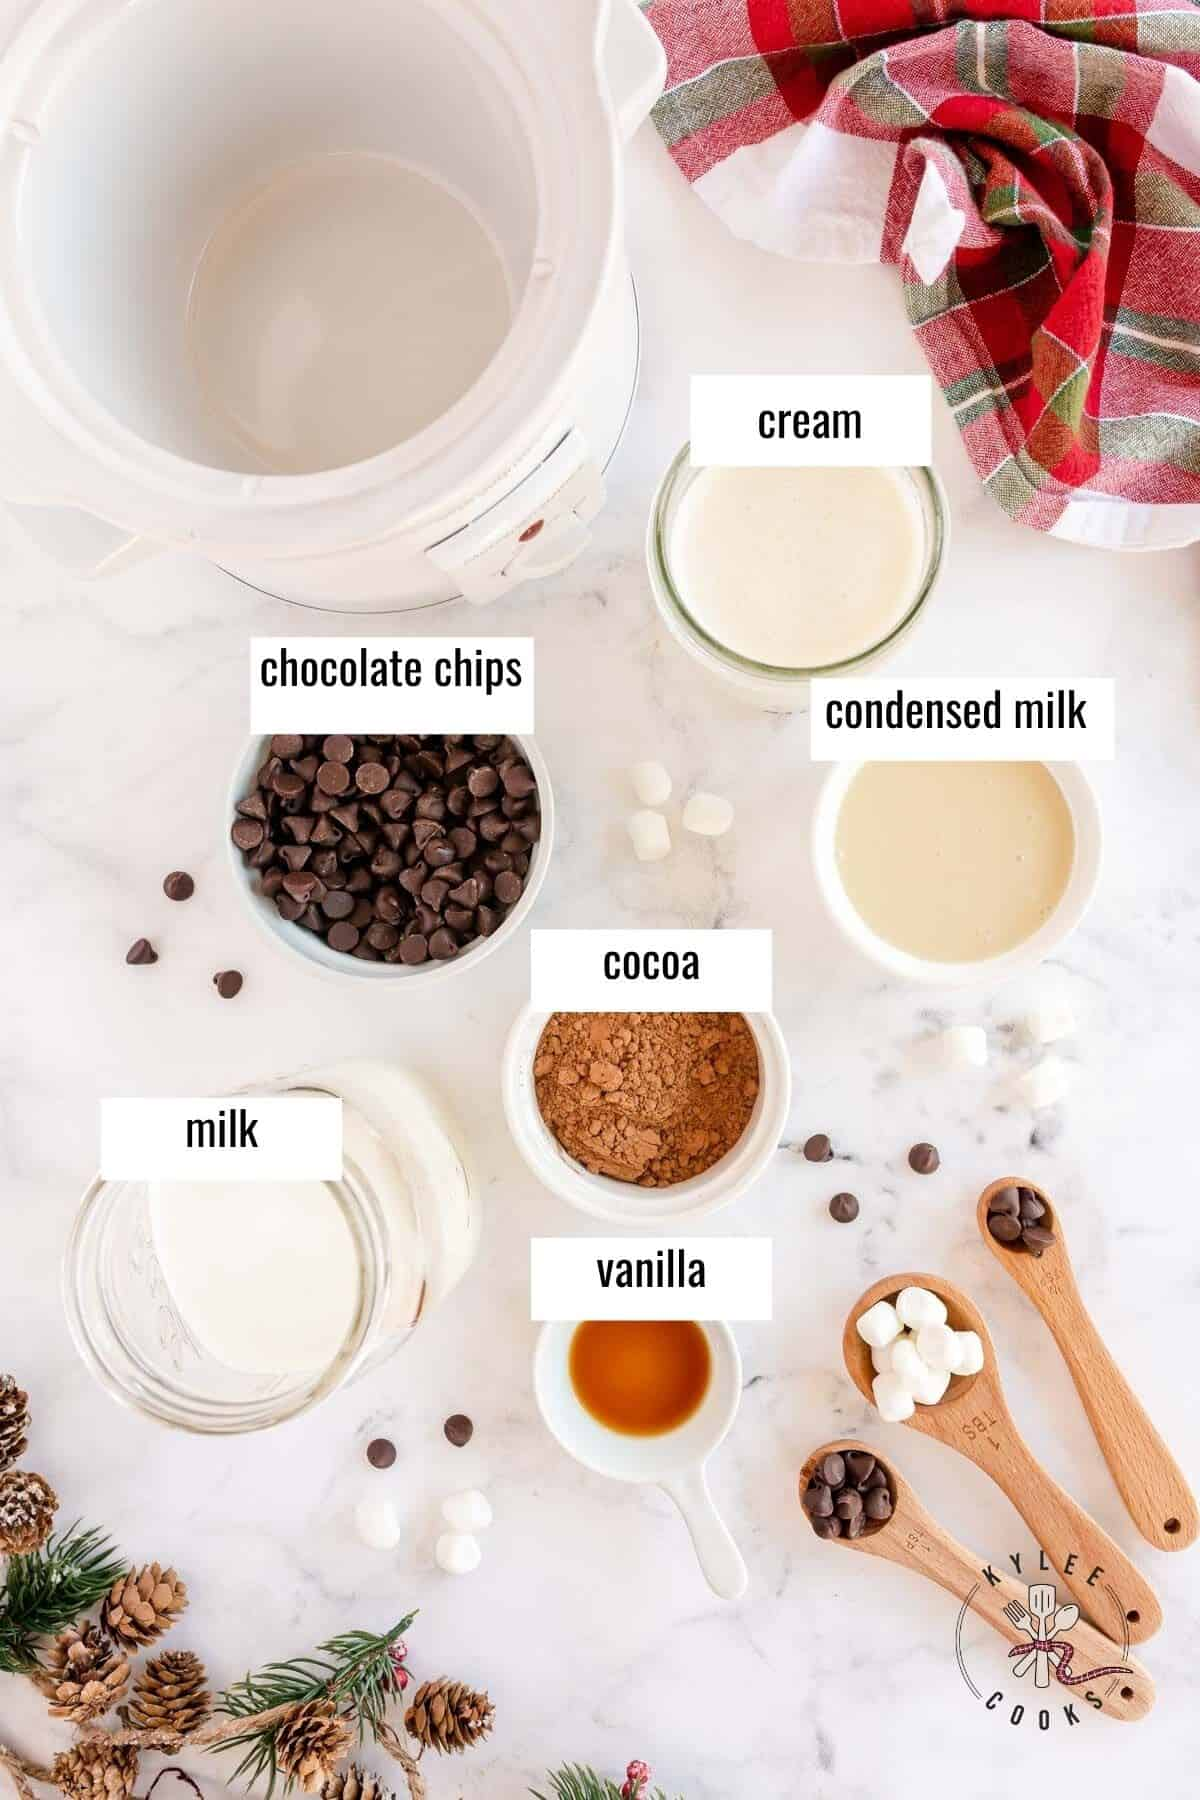 ingredients to make crockpot hot chocolate laid out and labeled